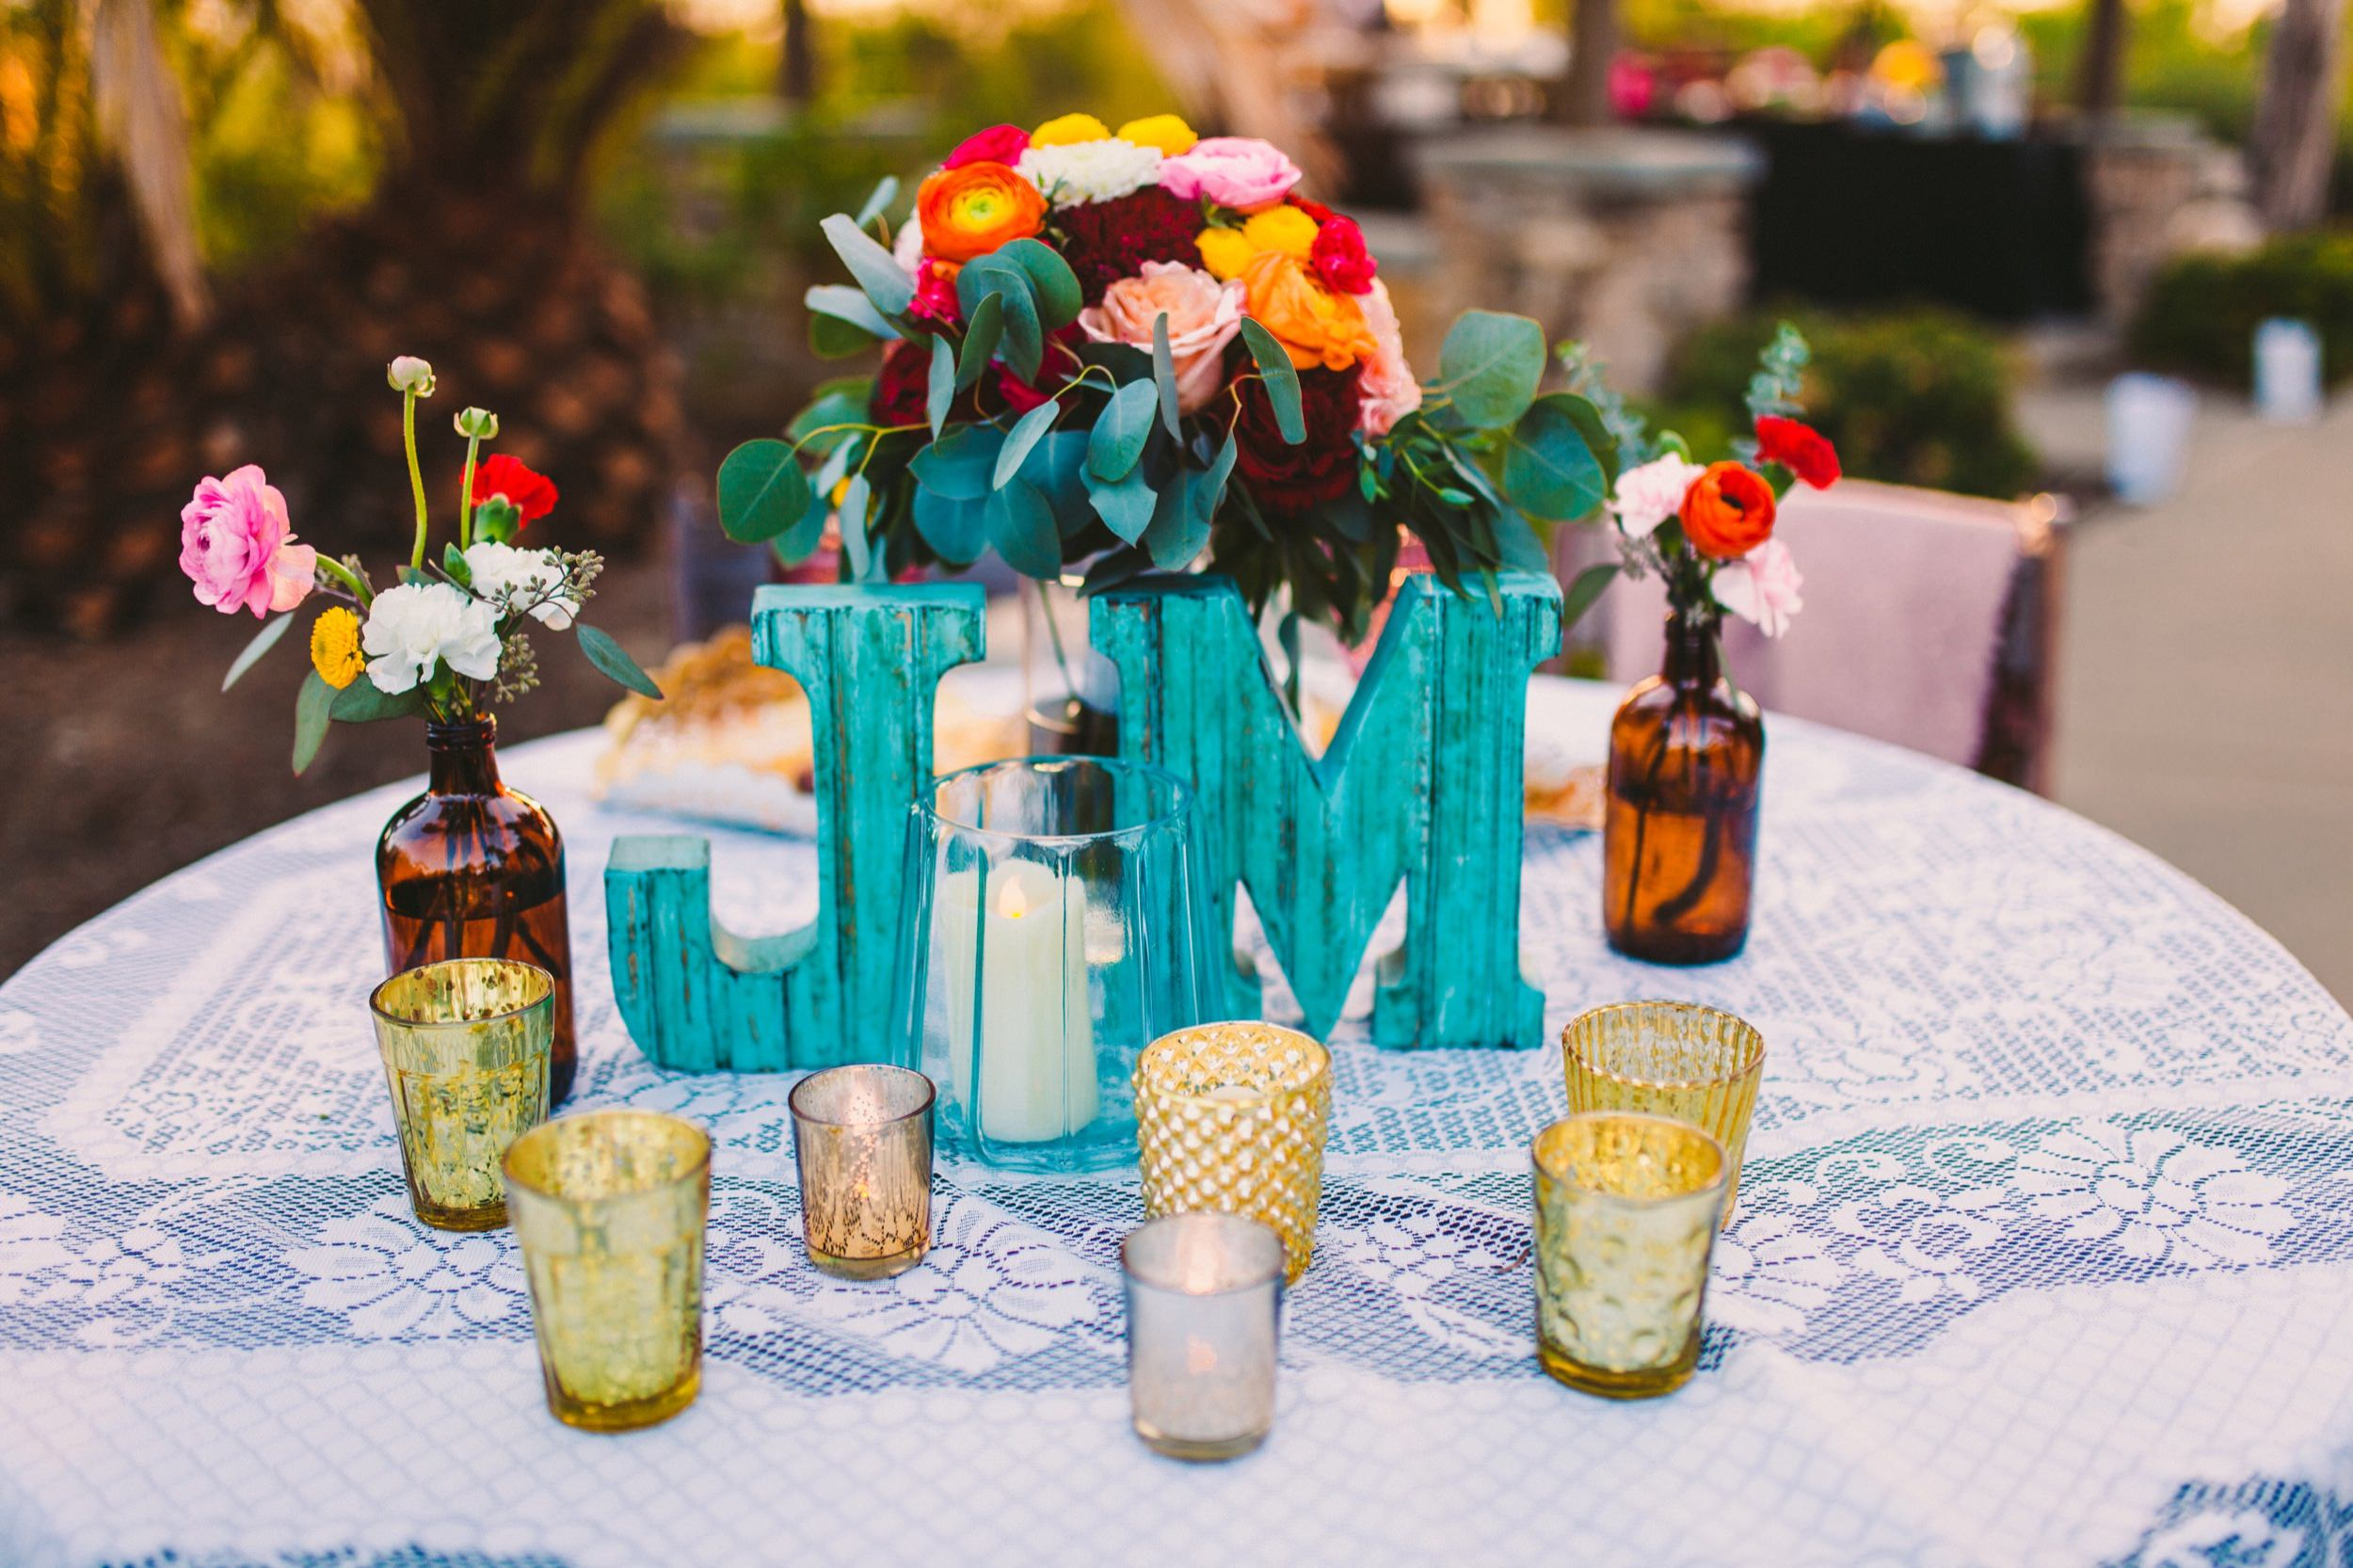 Intimate, Relaxed & Colorful Wedding Photography in Temecula-18.jpg